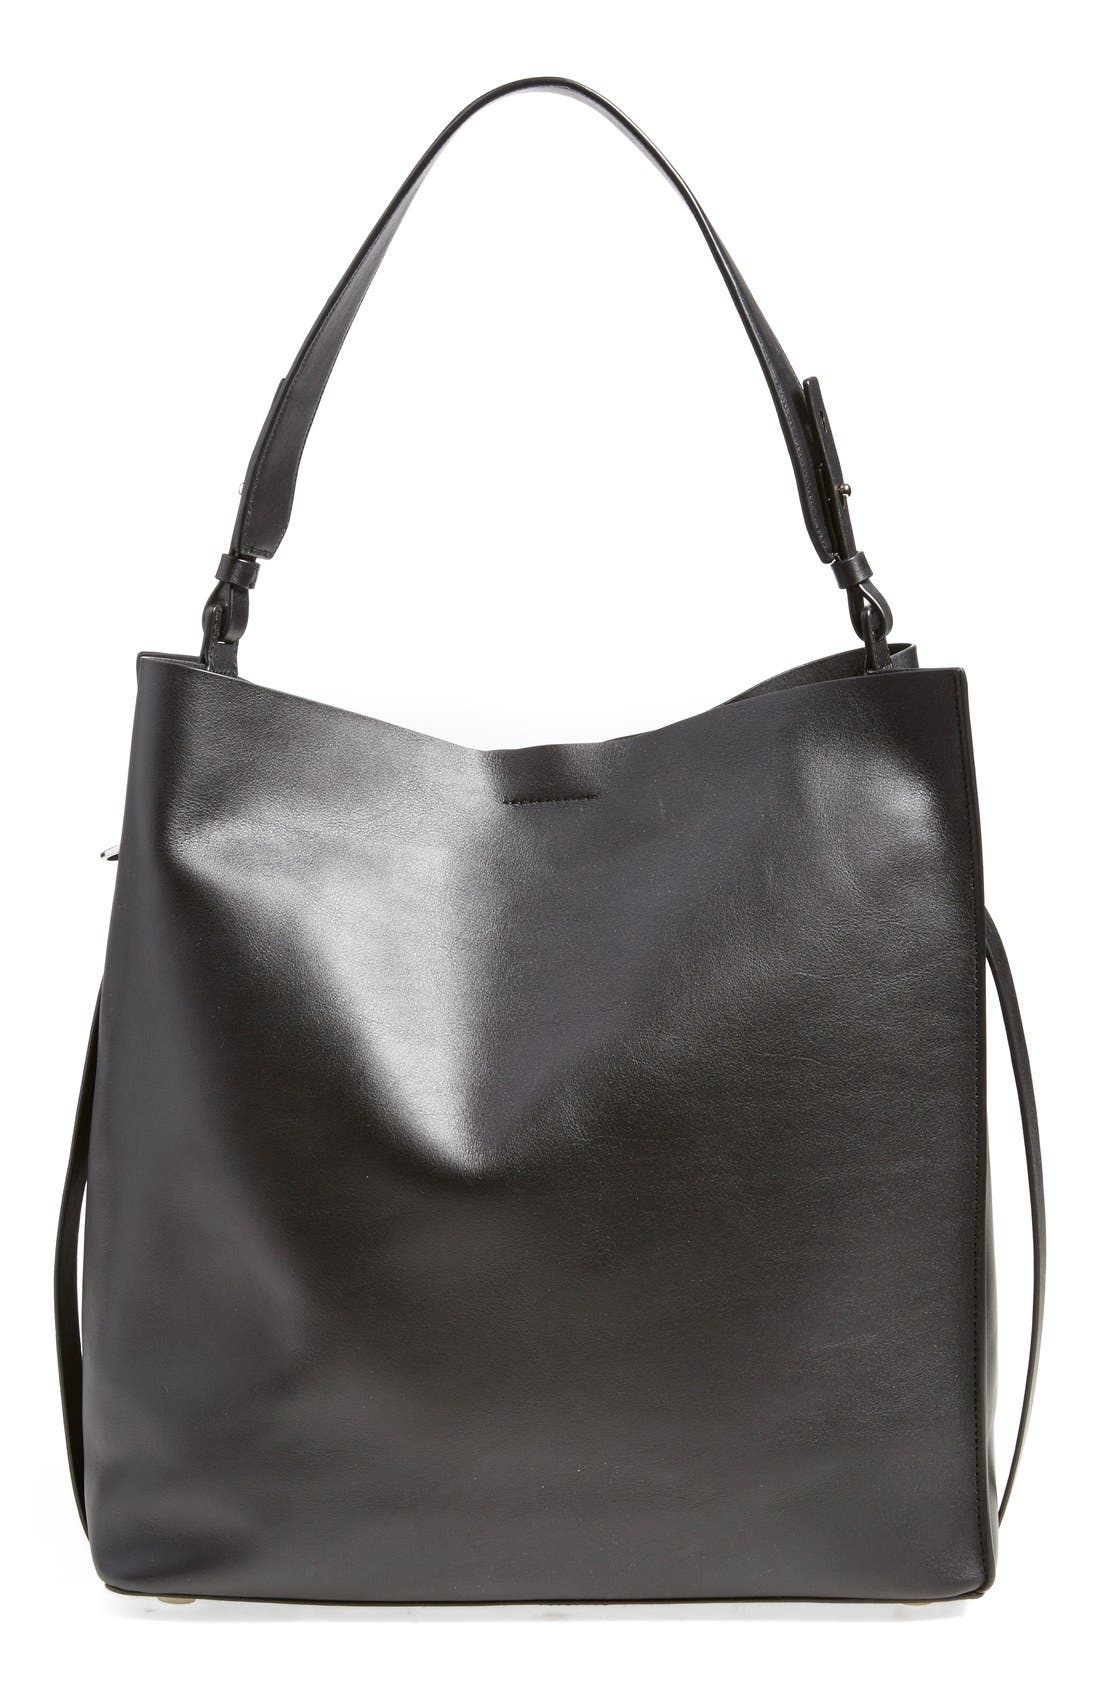 ALLSAINTS 'Paradise North/South' Calfskin Leather Tote - Black in Black/ Black